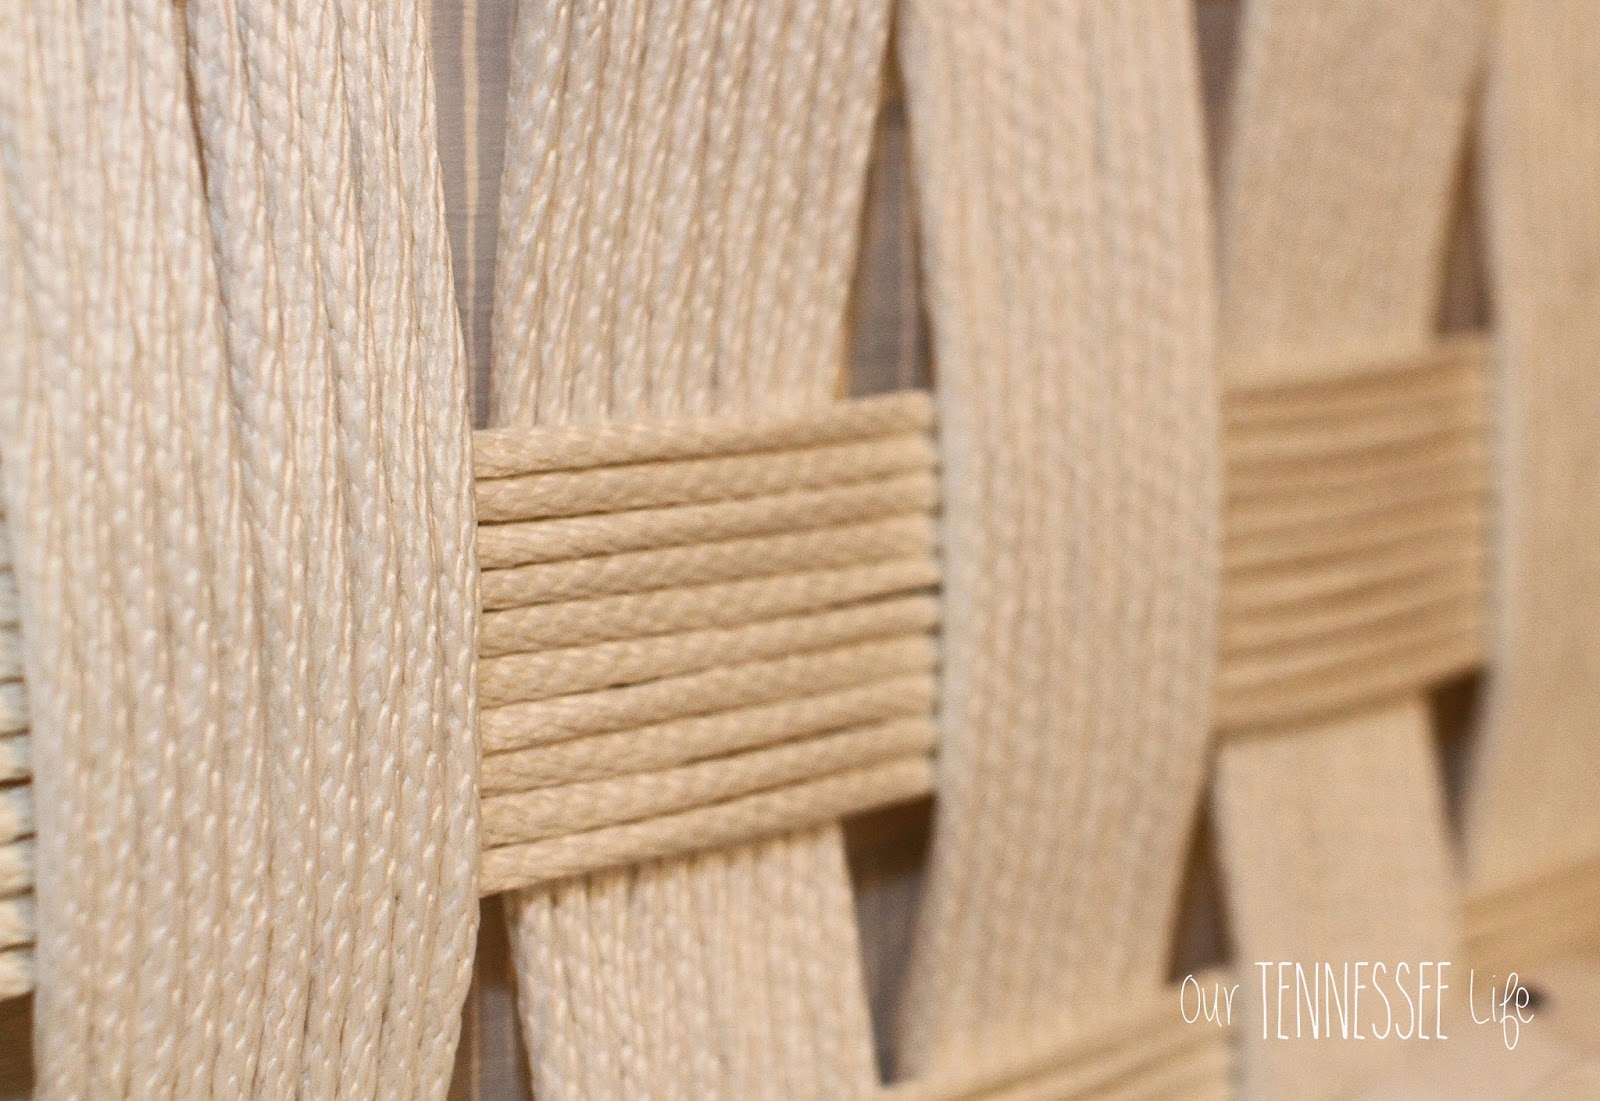 diy woven headboard  our tennessee life, Headboard designs